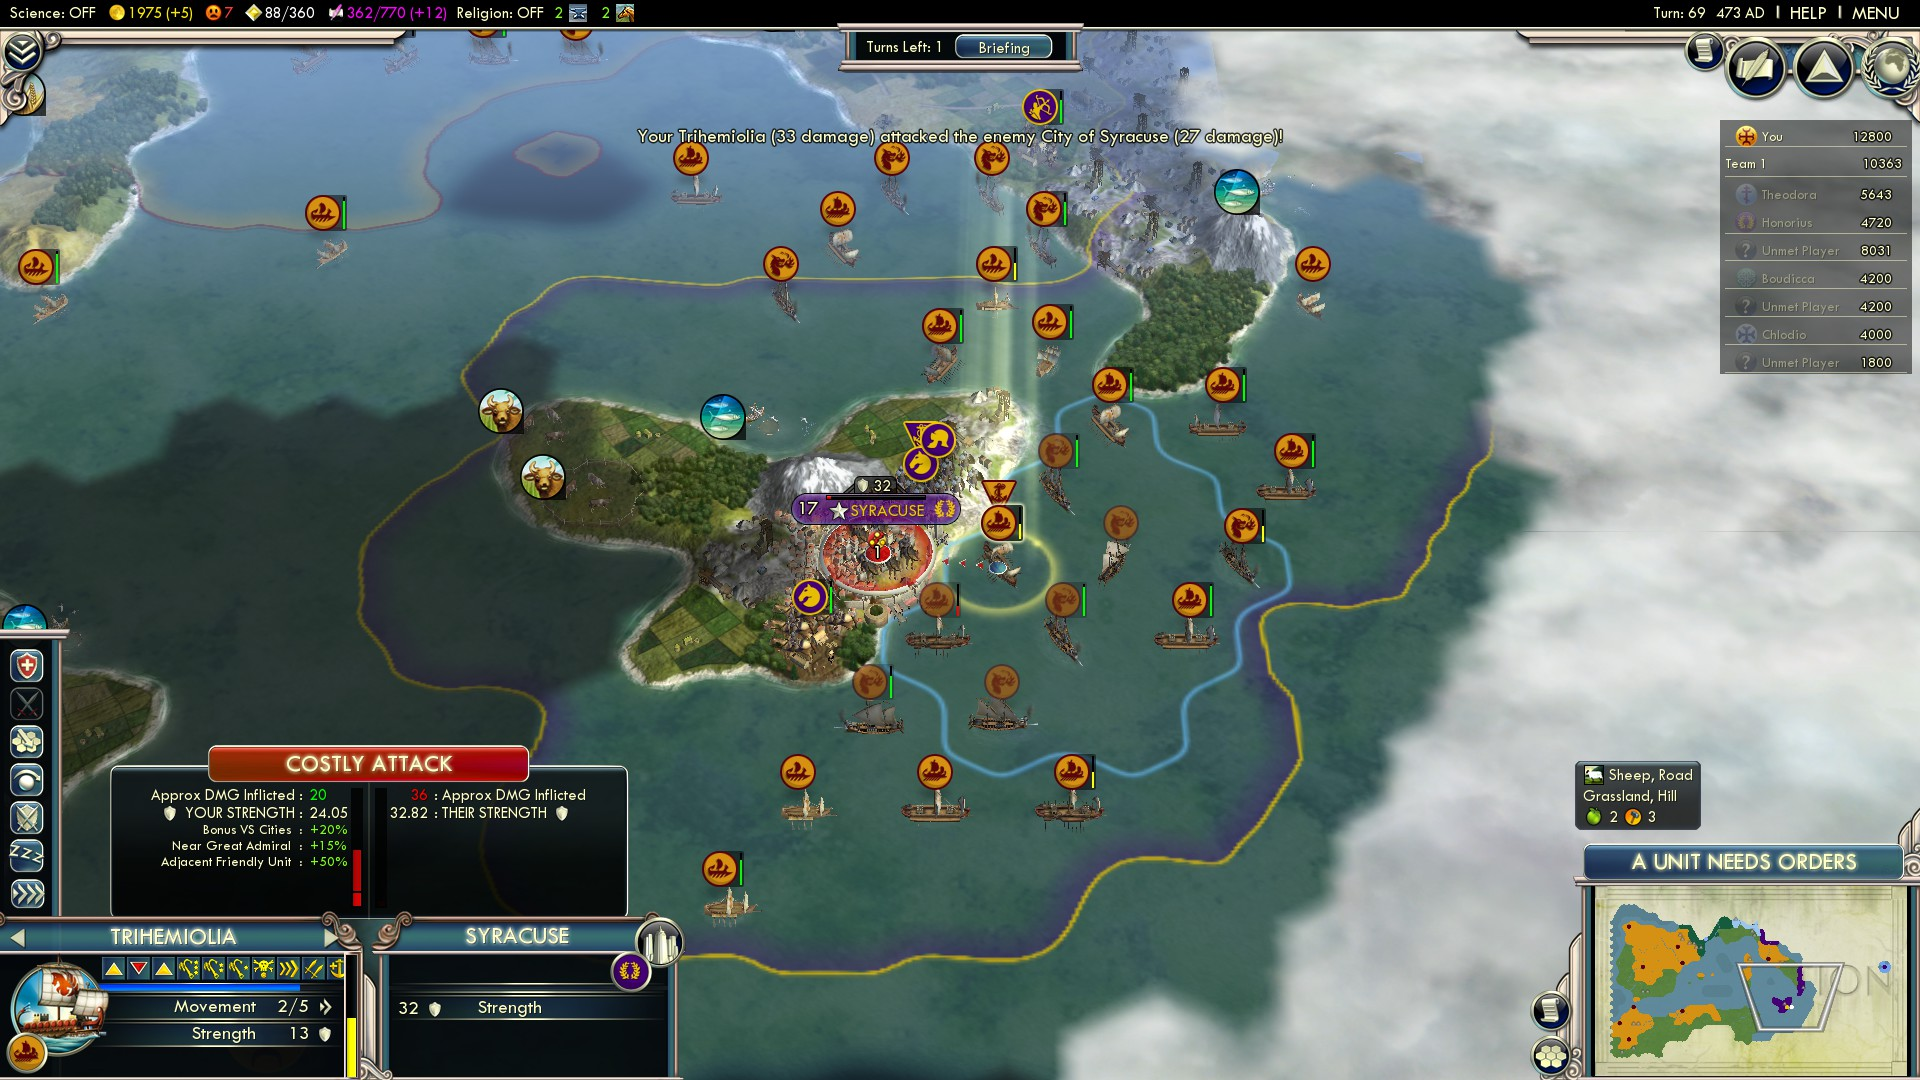 Civilization 5 Fall of Rome Vandals Deity - Syracuse turn 69